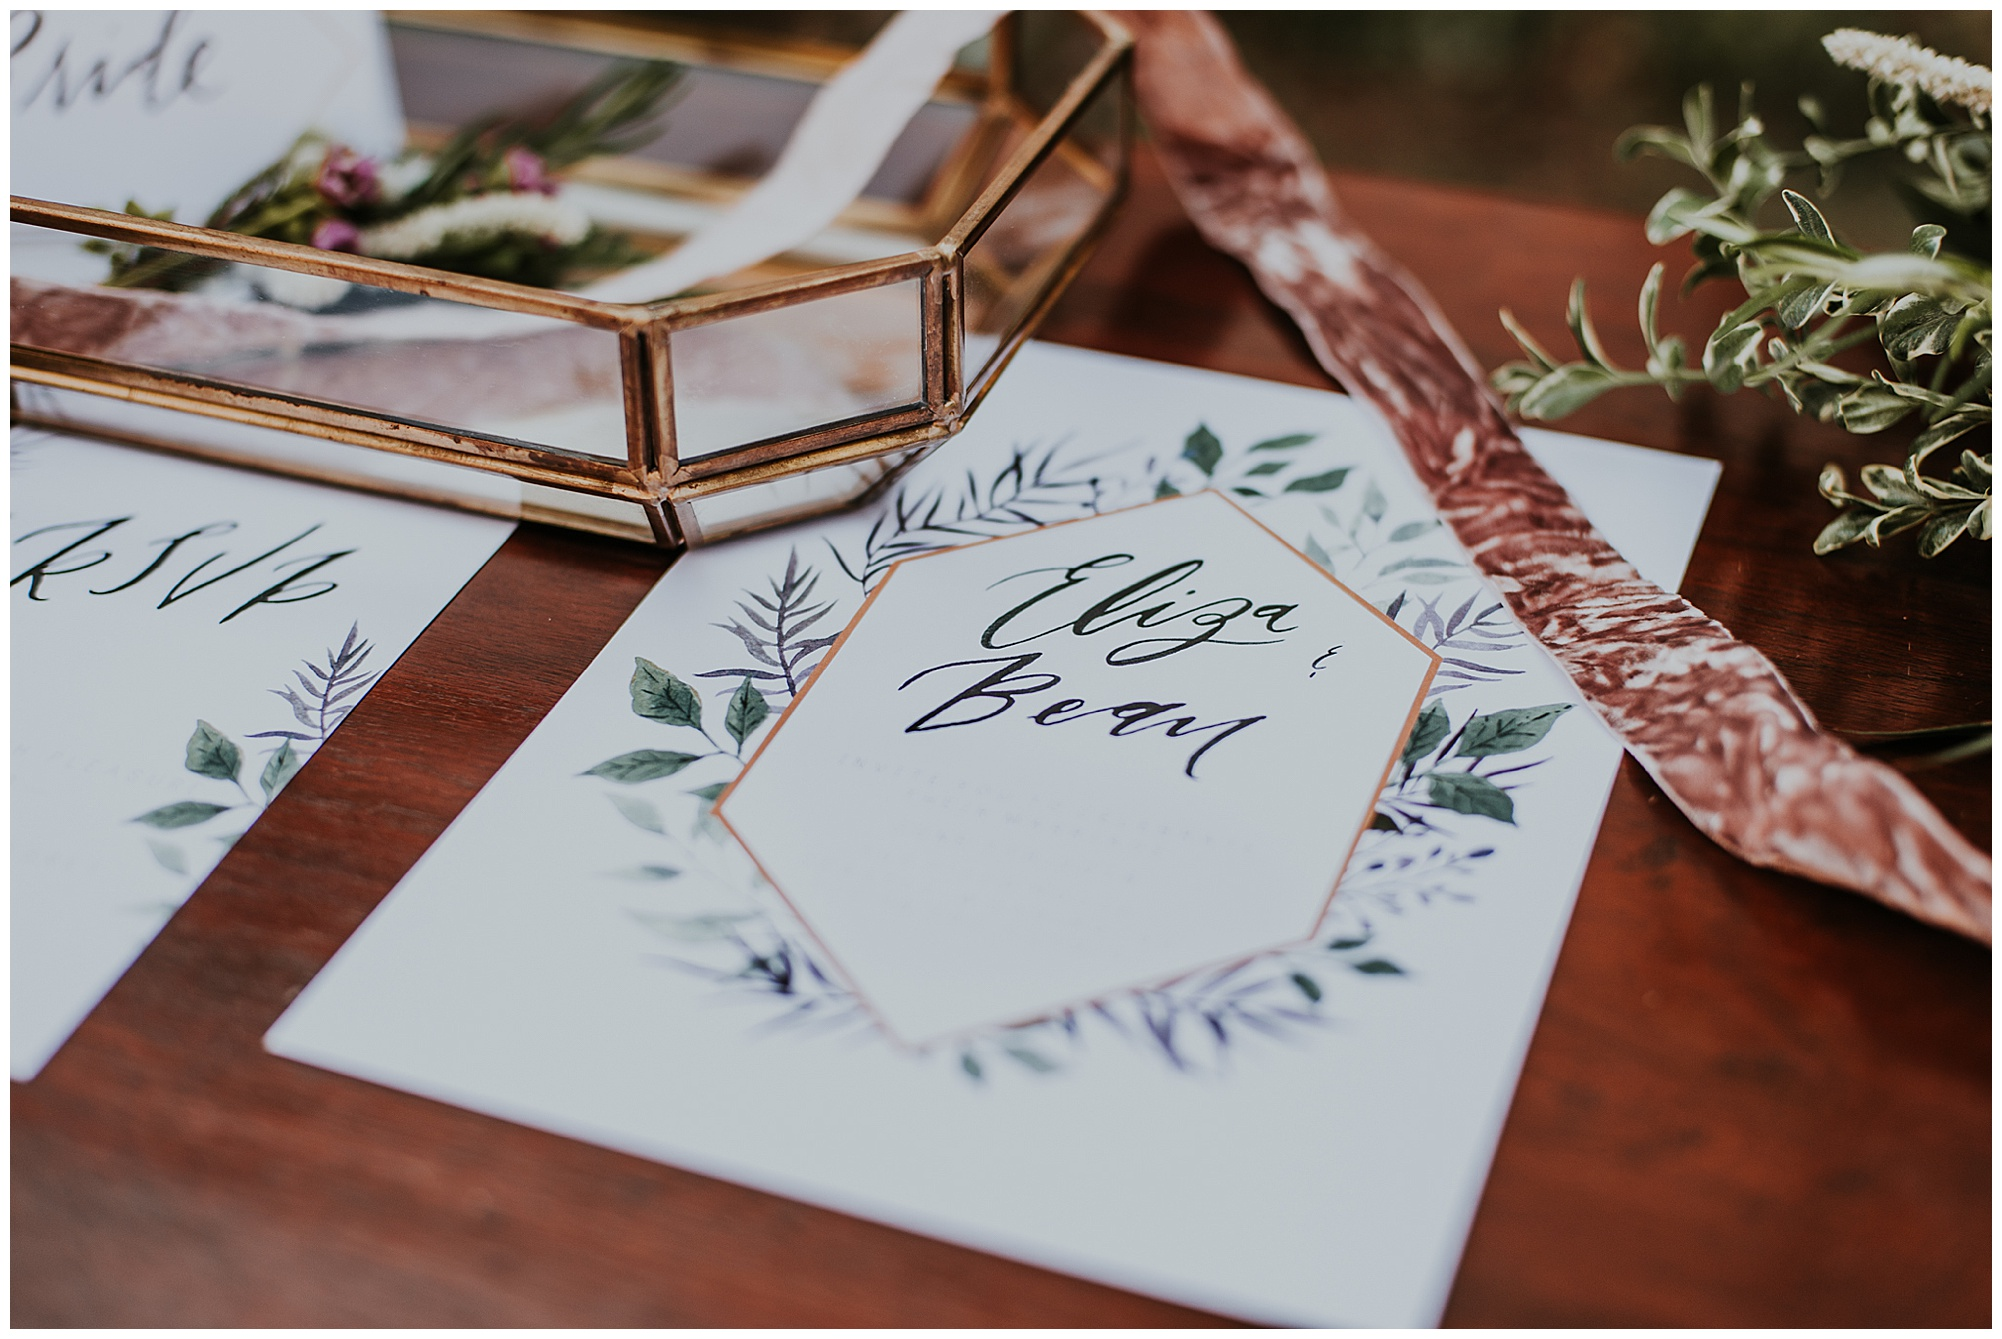 glamorous and boho style wedding theme at chanceford hall bed and breakfast. wedding detail photo of invites and invitation suite. maryland wedding now featured on my eastern shore wedding.